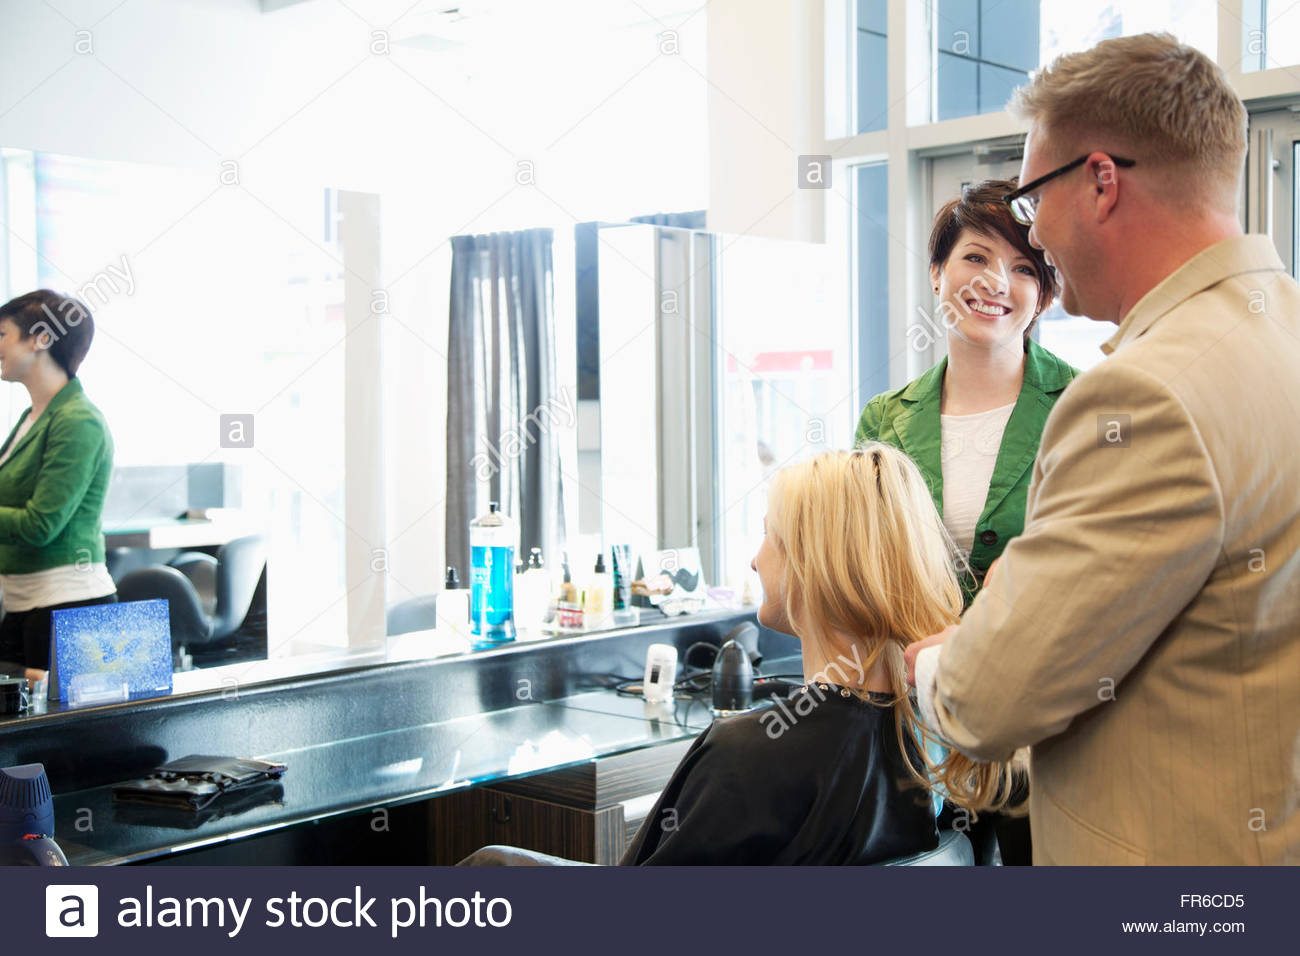 hairstylsts working at hair salon Stock Photo